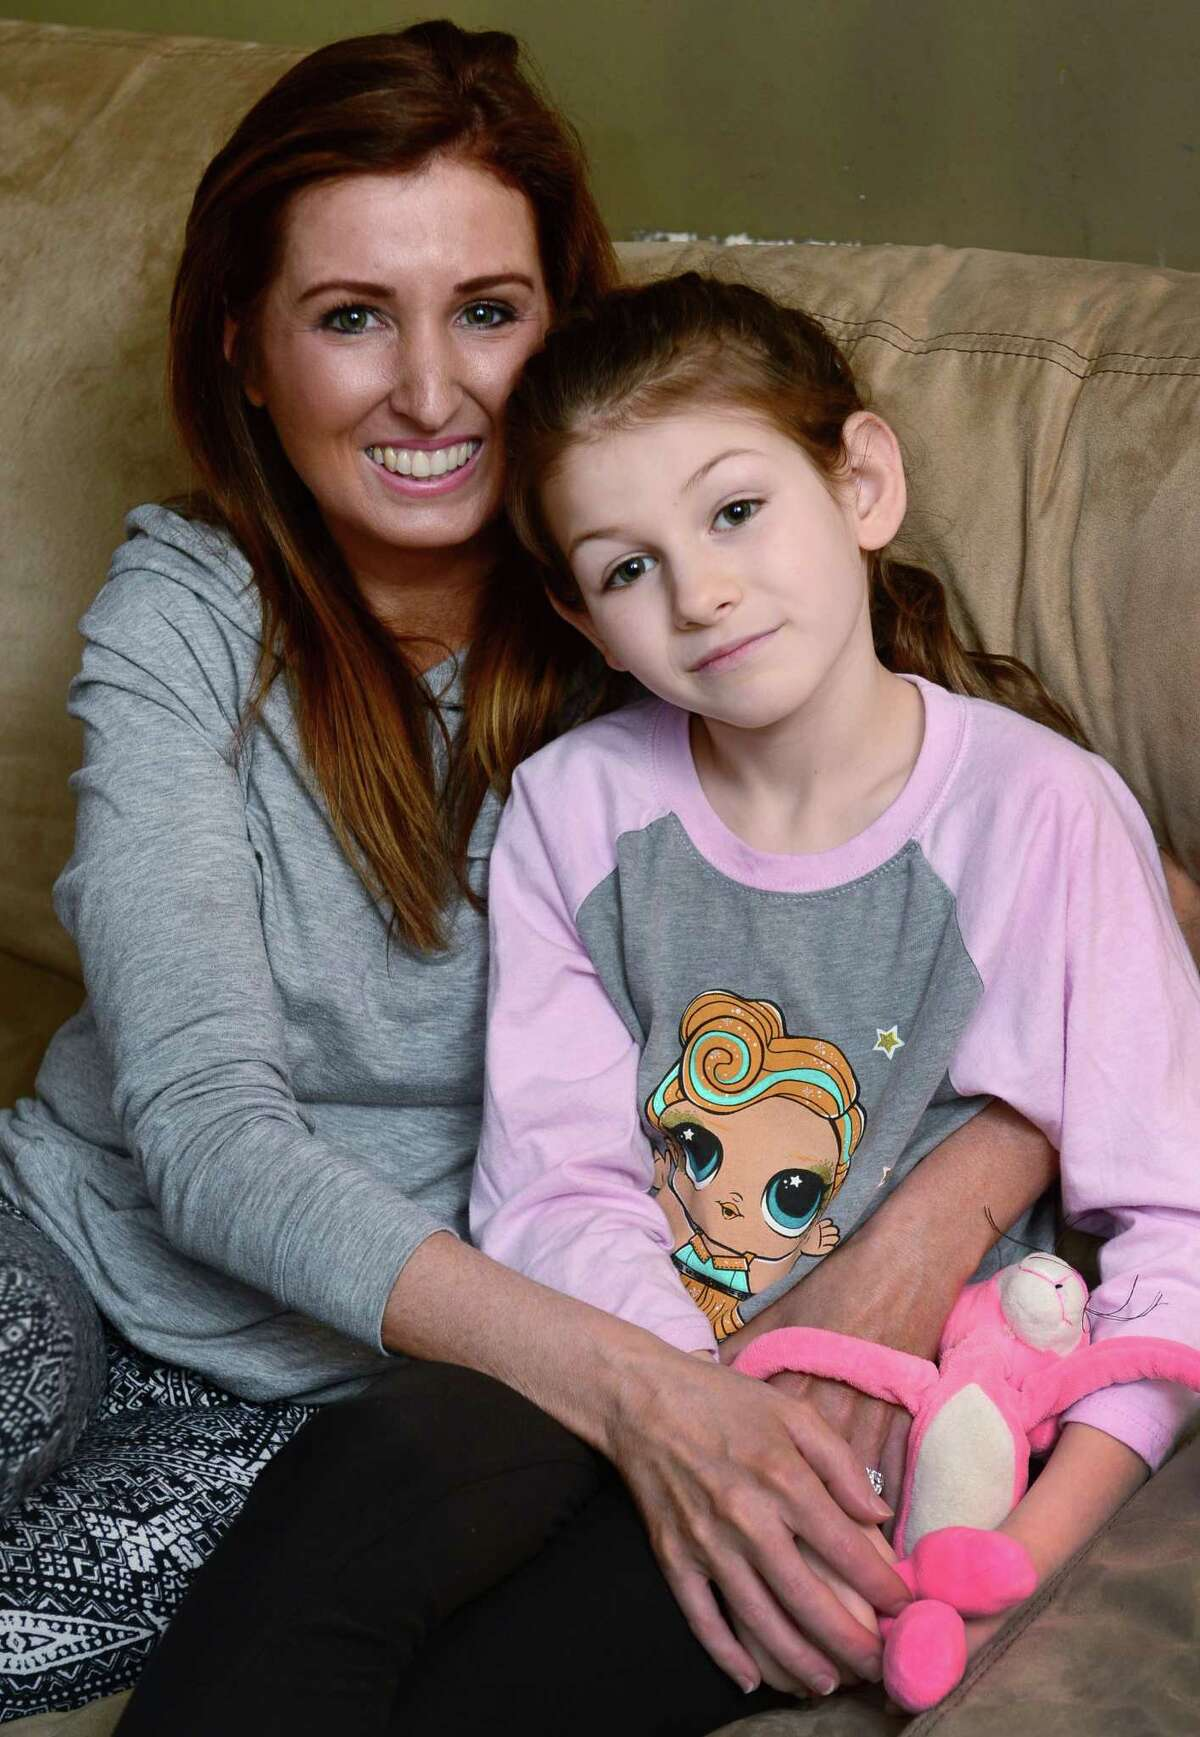 Erica DePalma, board member of the AG Bell Association for the Deaf and Hard of Hearing, with her hearing impaired daughter, Jameson DePalma, 7, at their home in Norwalk, Conn. DePalma is organizing an event for parents of children with hearing loss and their friends and families April 17, 2019. The event, also open to professionals who treat children with hearing impairments, provides a networking opportunity for parents looking to share tips and find resources -- and offers children living with disabilities the opportunity to forge friendships with each other. Childhood hearing loss is rare and some parents said they struggle to connect with families similar to theirs living in Fairfield County.